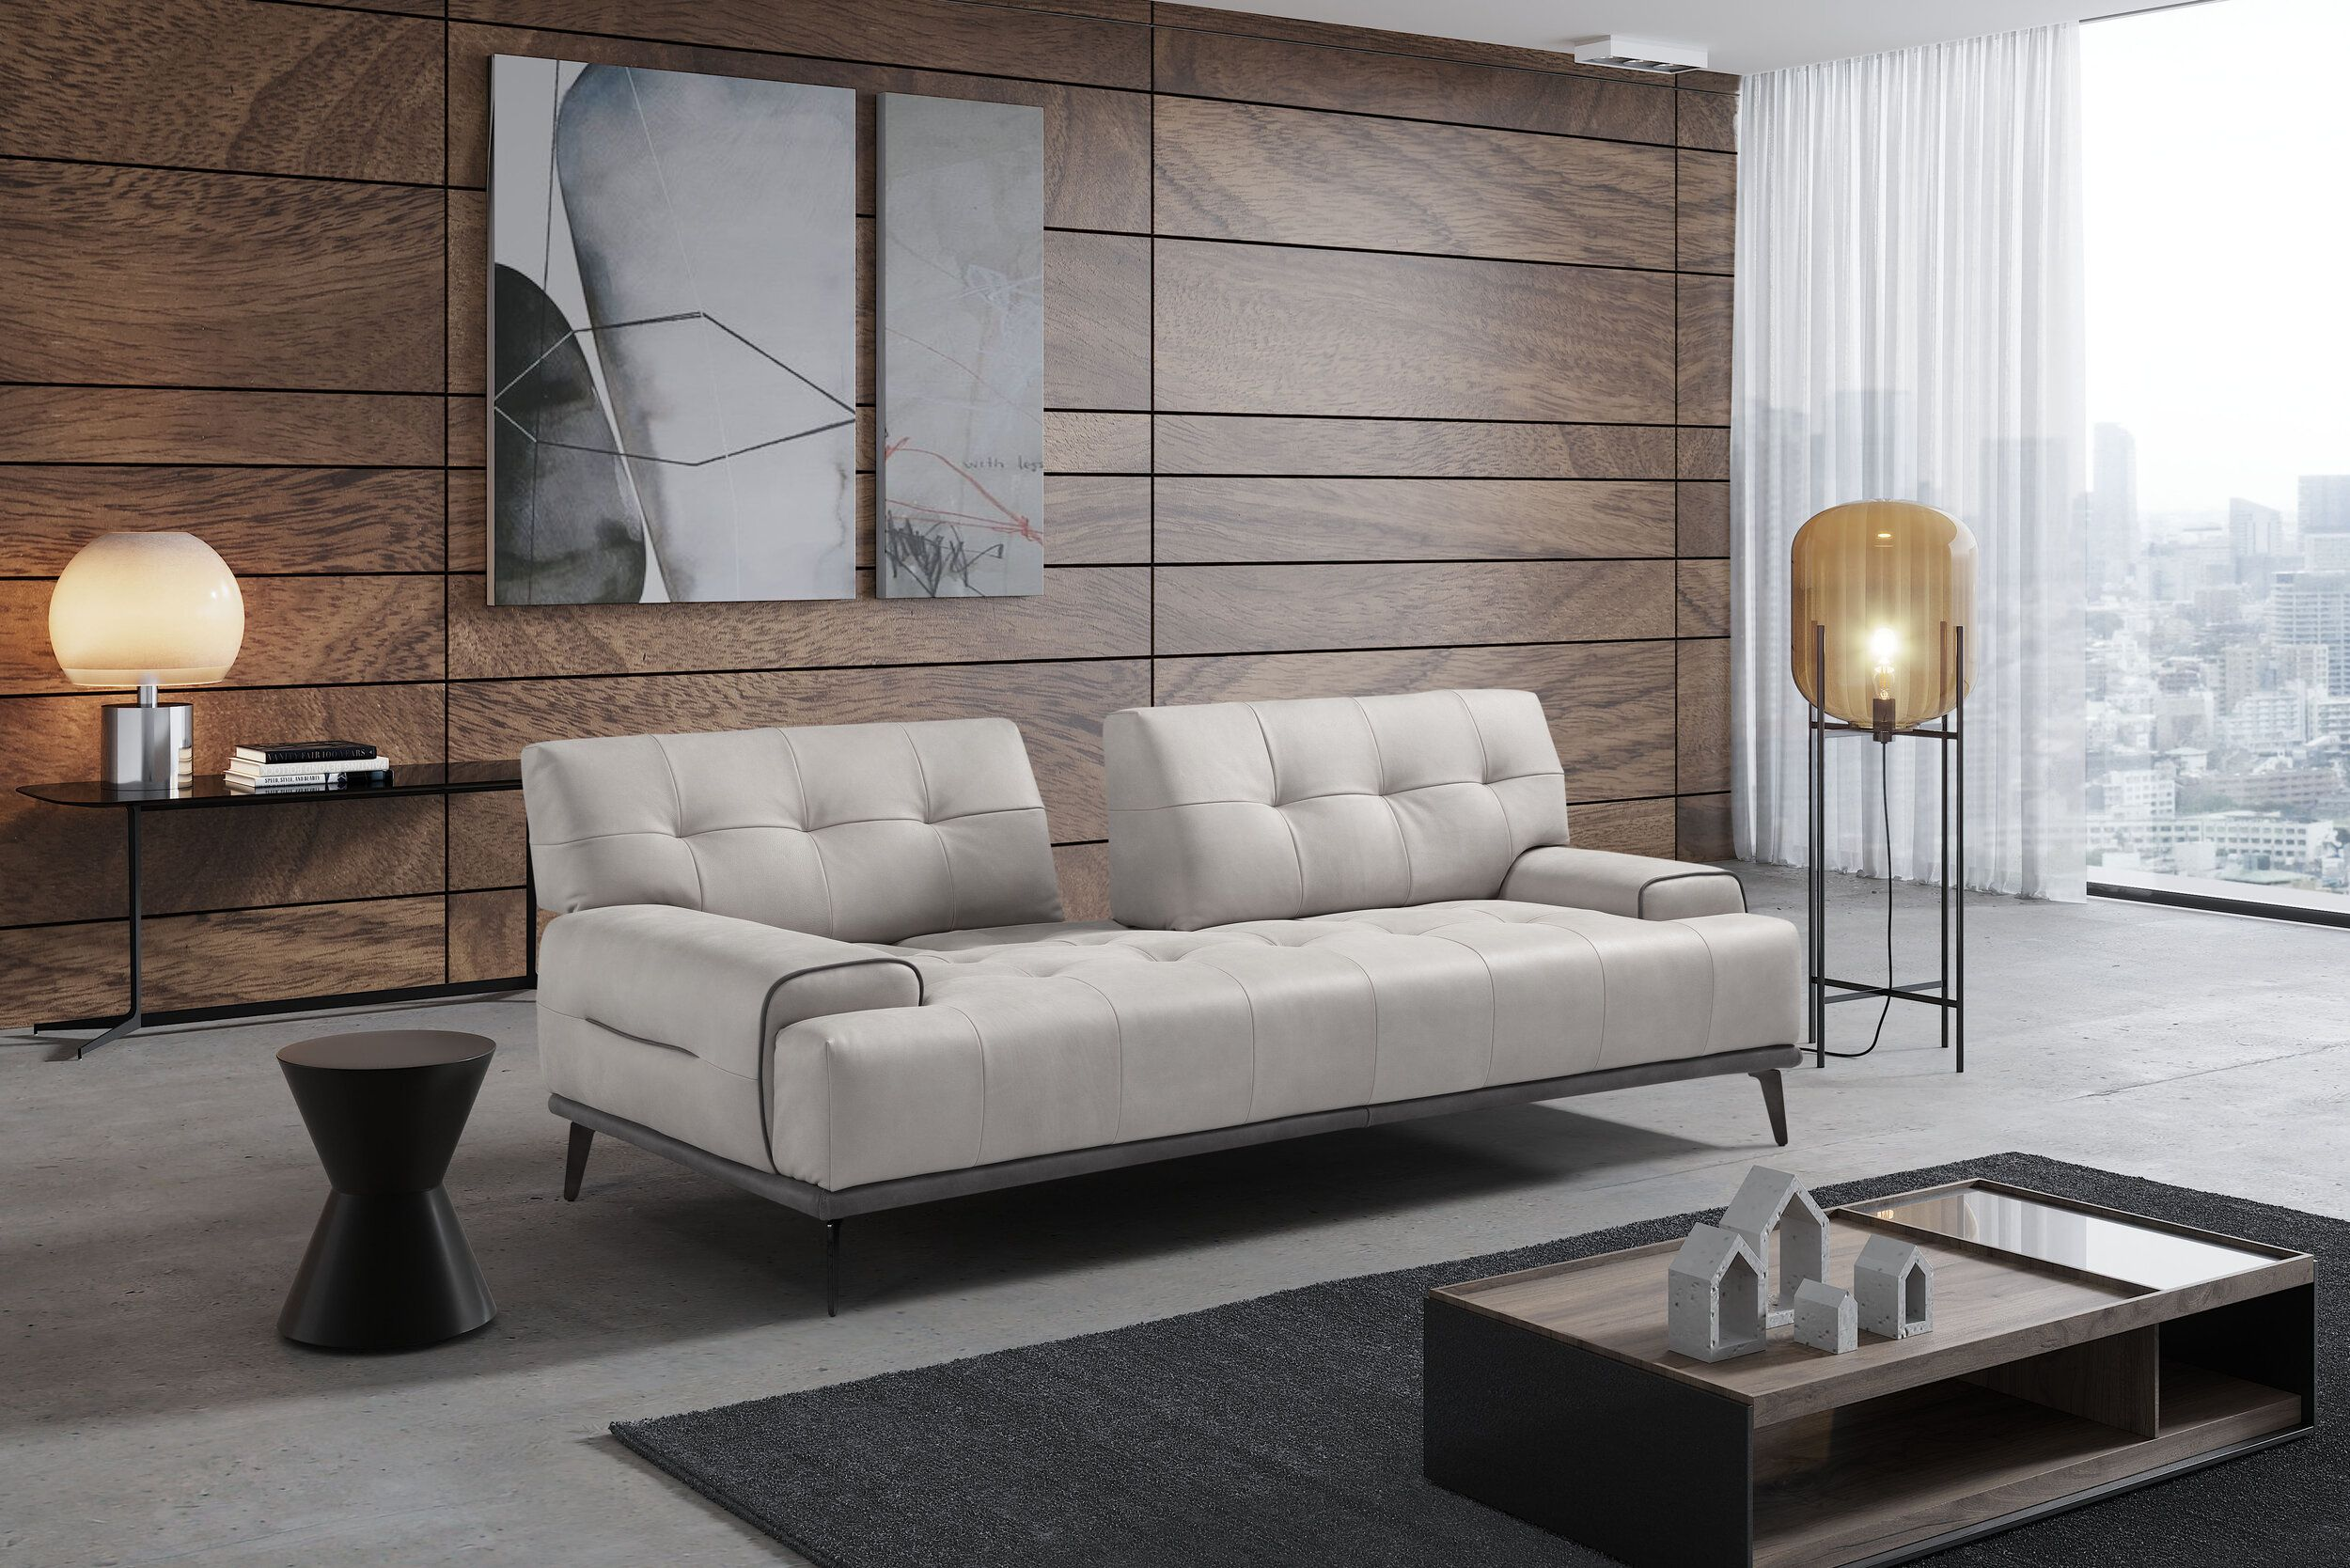 Diven Living Leather And Fabric Contemporary Designer Sofas In 2020 Sofa Design Sofa Italian Sofa